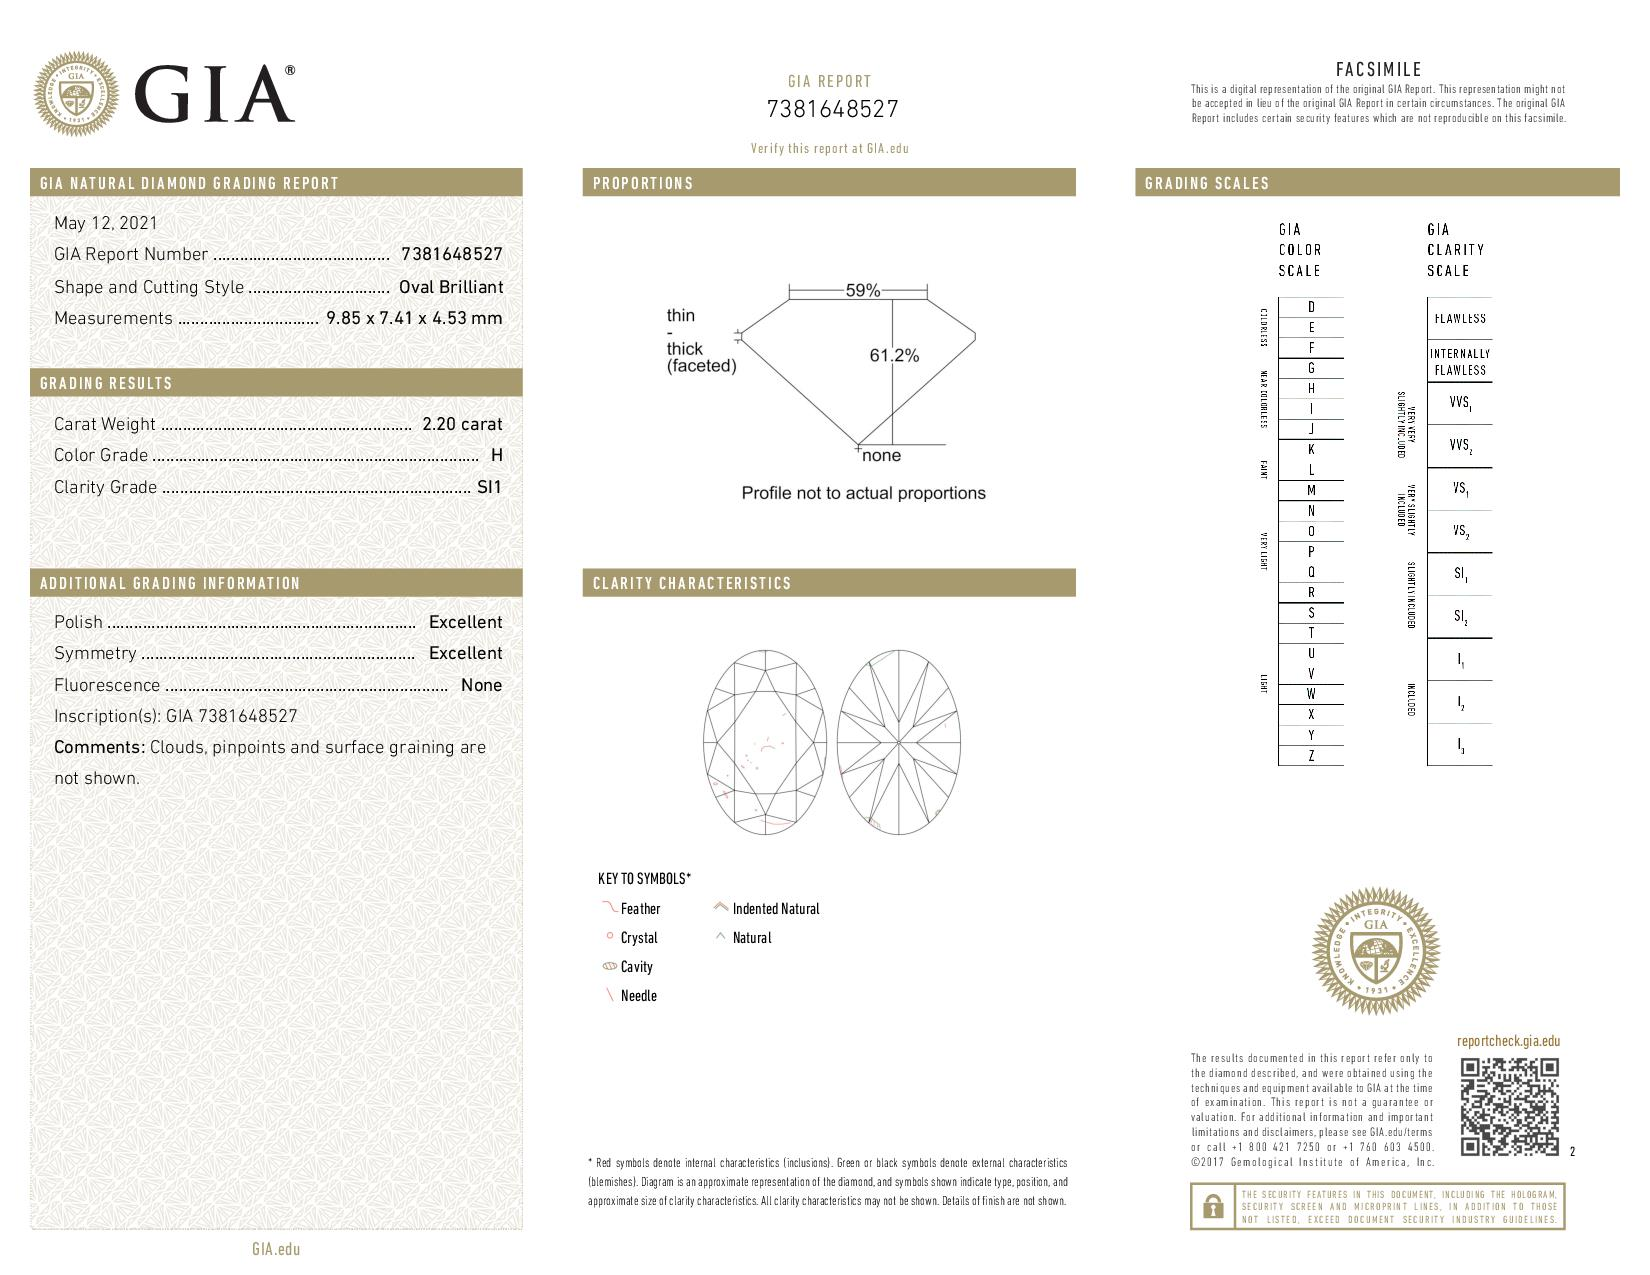 This is a 2.20 carat oval shape, H color, SI1 clarity natural diamond accompanied by a GIA grading report.